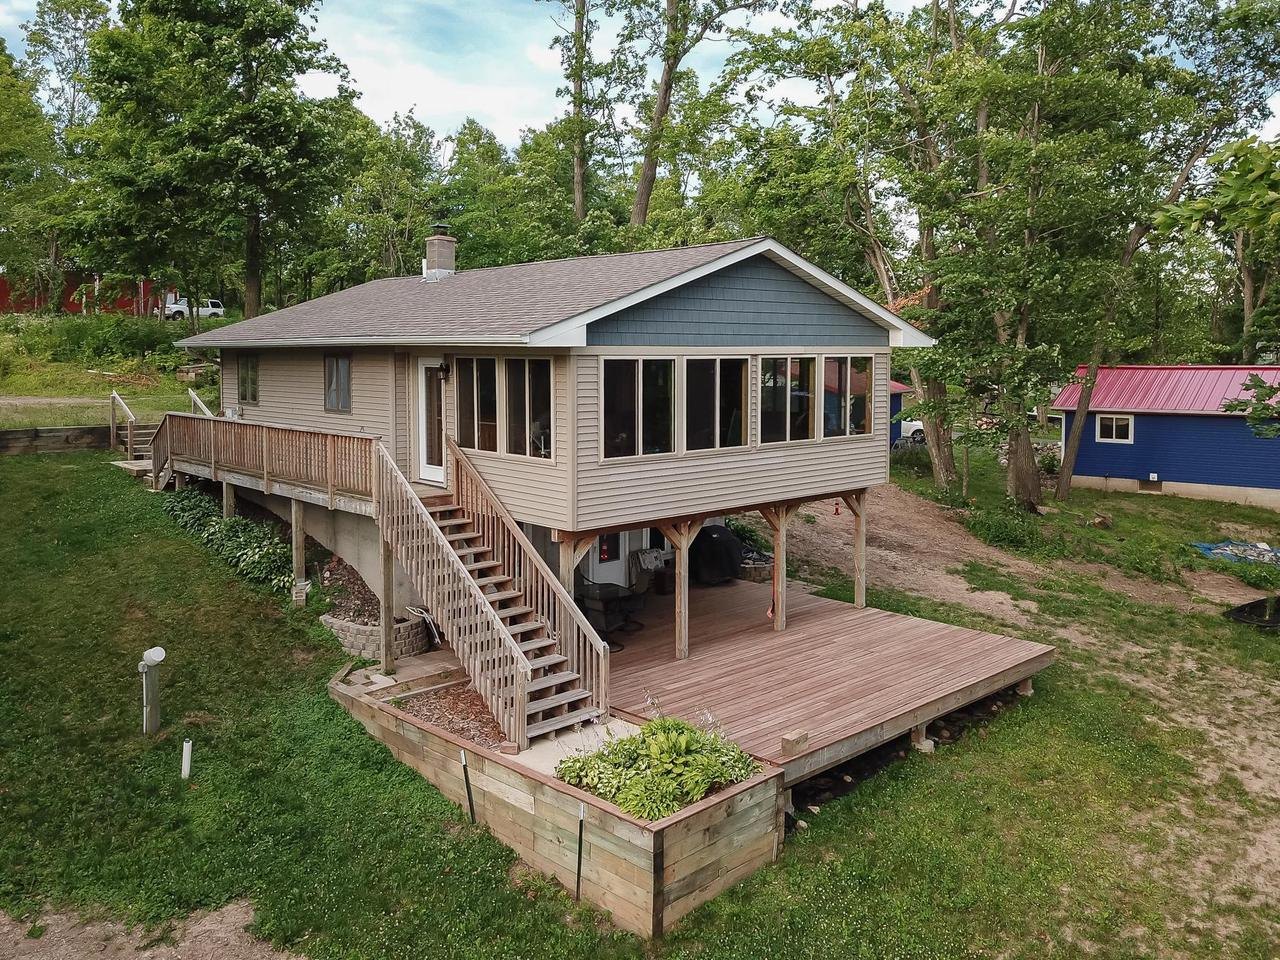 This nice and neat custom-built year round home has a unique floor plan that really addresses the Lake. The walk out and views to the lake are awesome. The home has in floor heat, a walkout lower level, and a fantastic vaulted ceiling lakeside family room. The huge deck overlooks the north end of Big Round and you'll have all the fish you can stand, right off the dock.